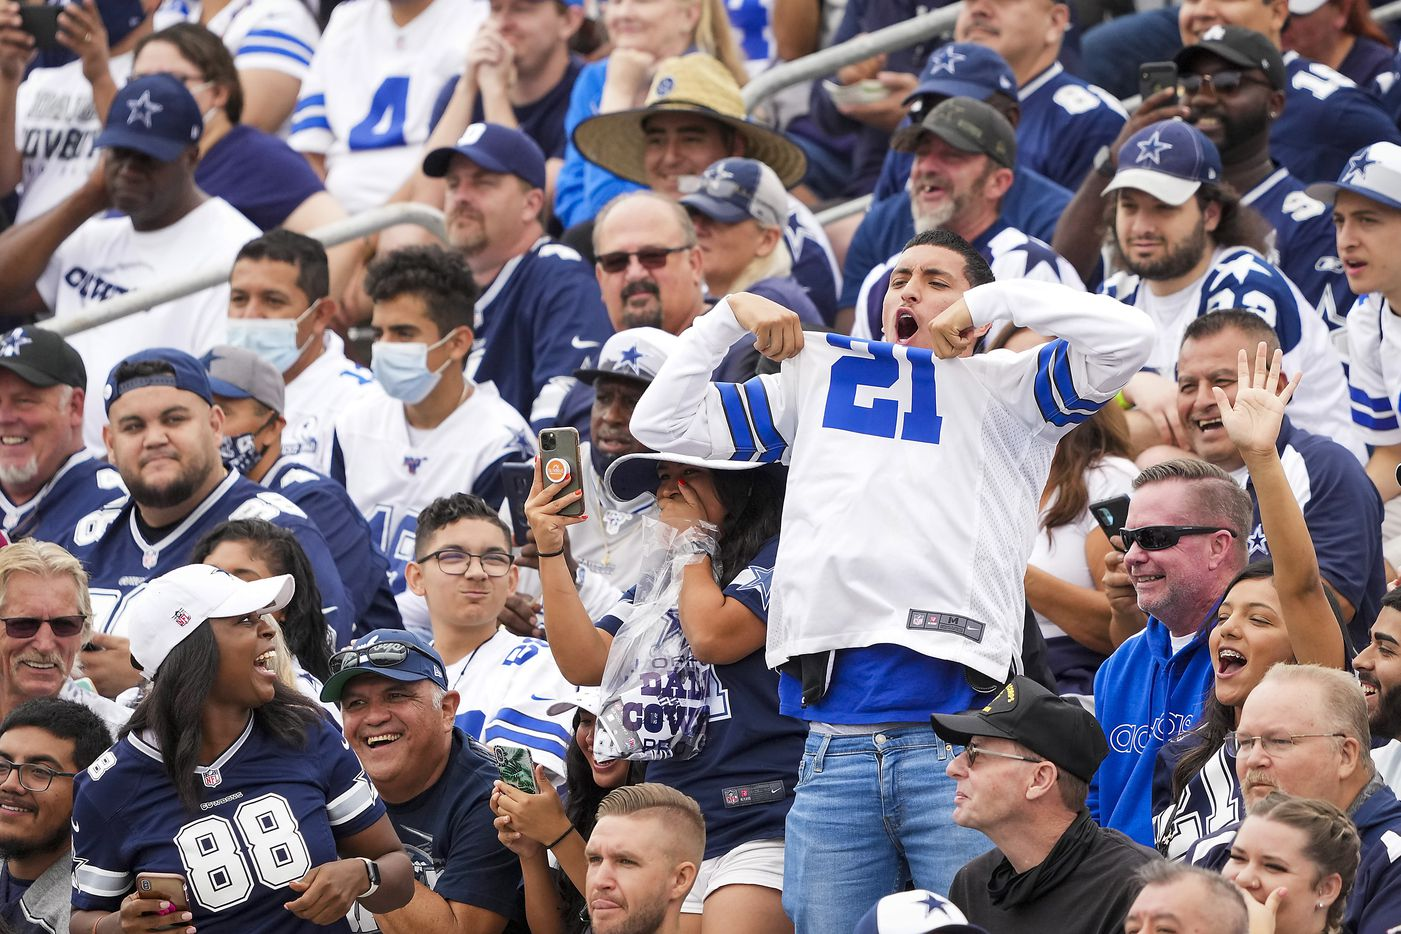 A fan yells his support for Dallas Cowboys running back Ezekiel Elliott during a practice at training camp on Saturday, July 24, 2021, in Oxnard, Calif.